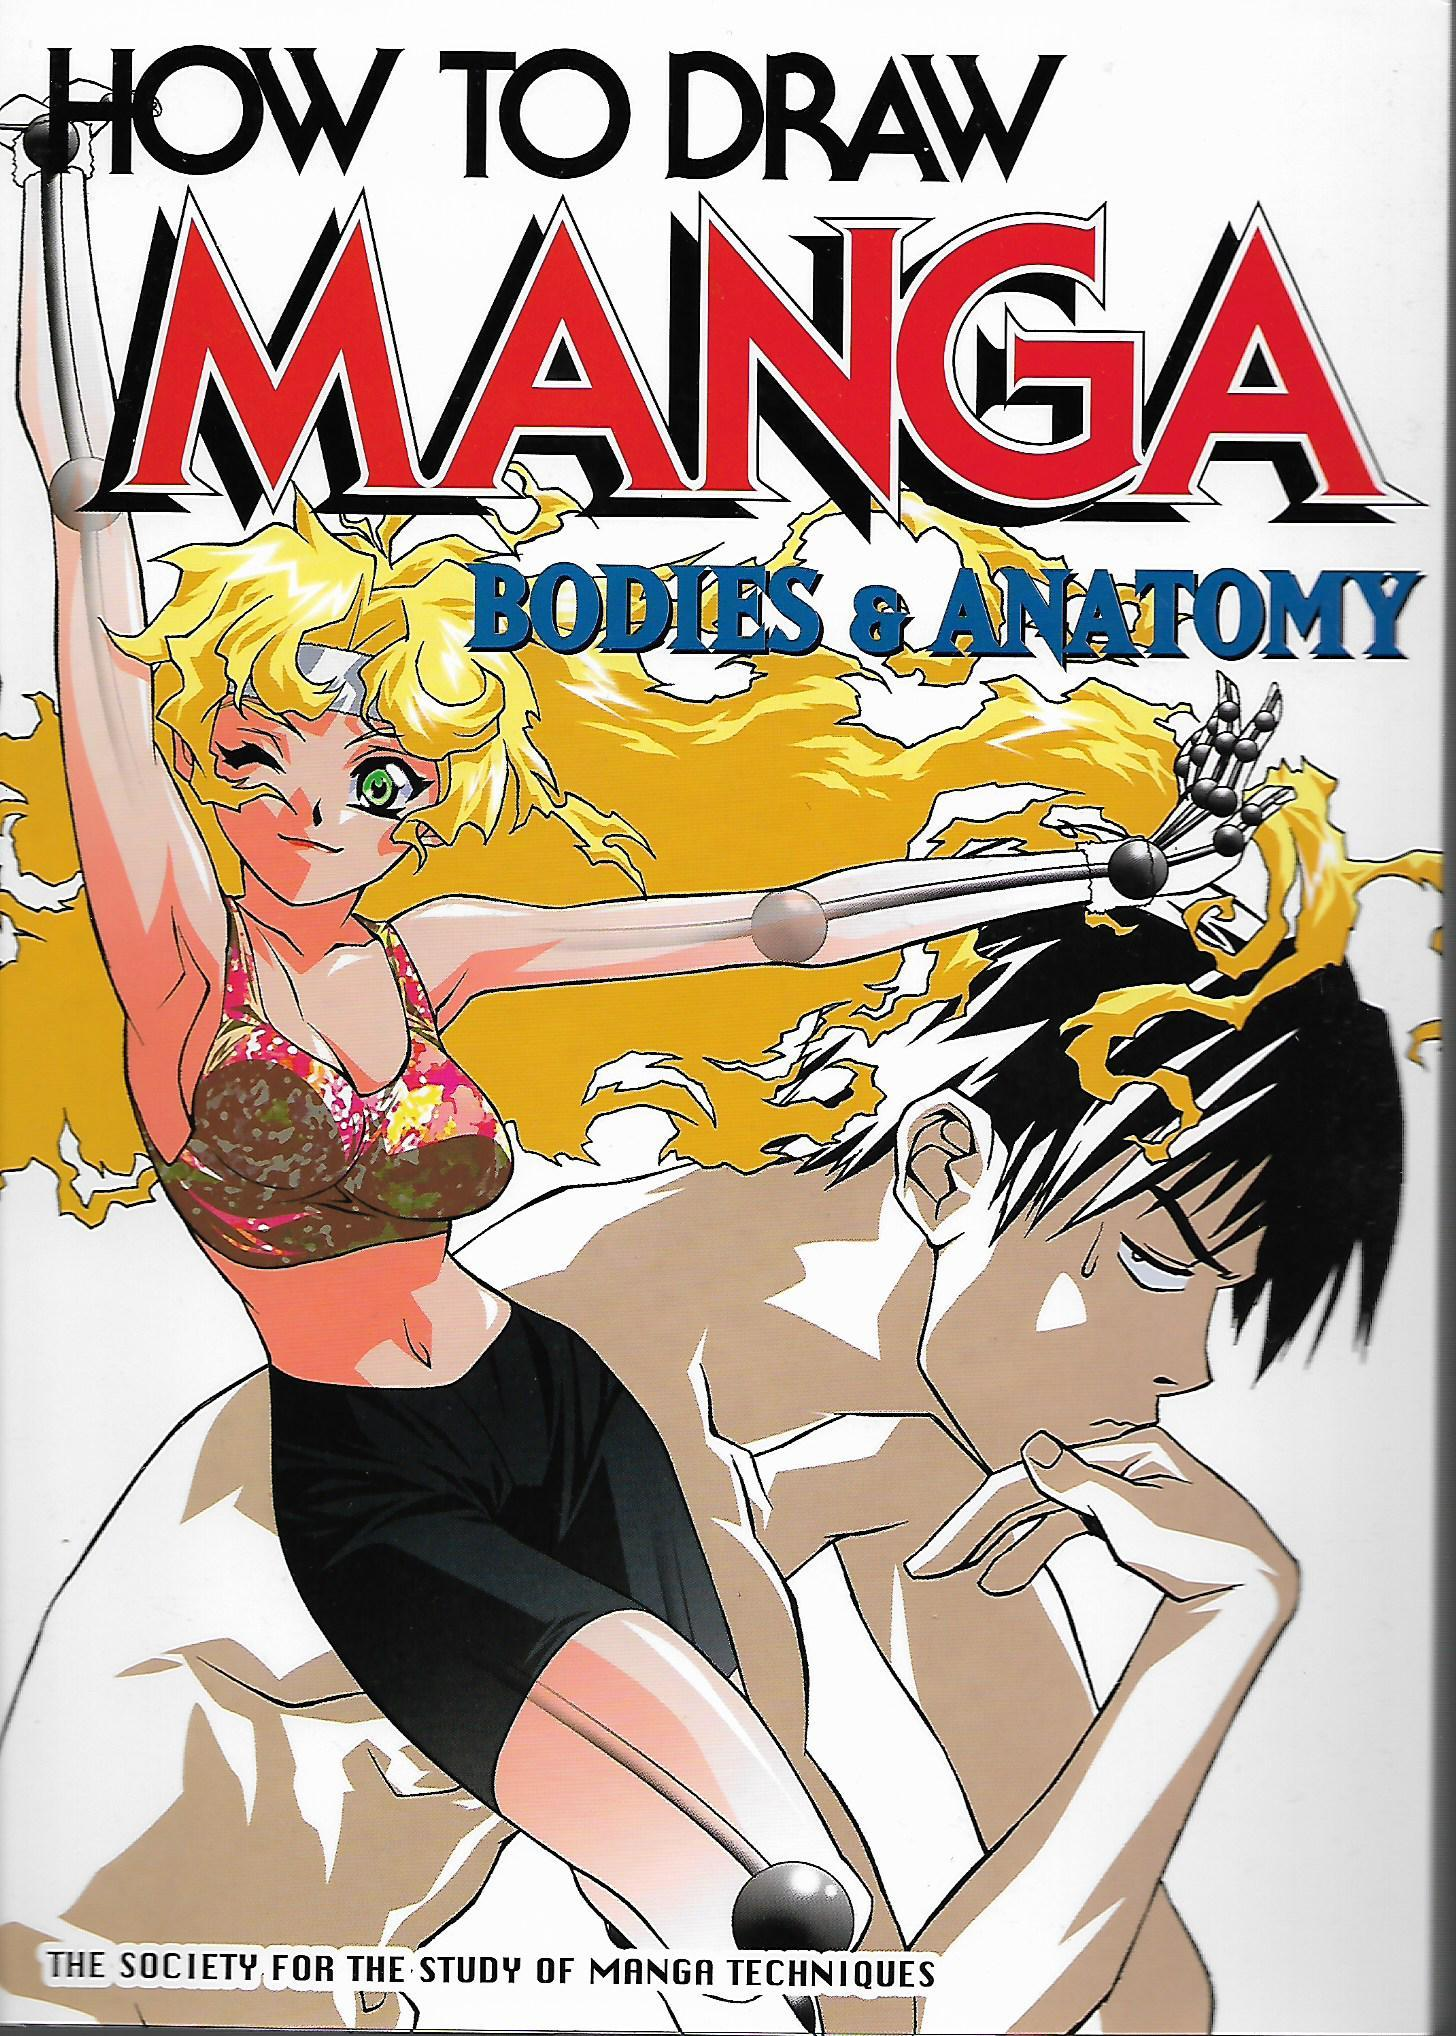 How to Draw Manga: Bodies & Anatomy, Society for the Study of Manga Techniques